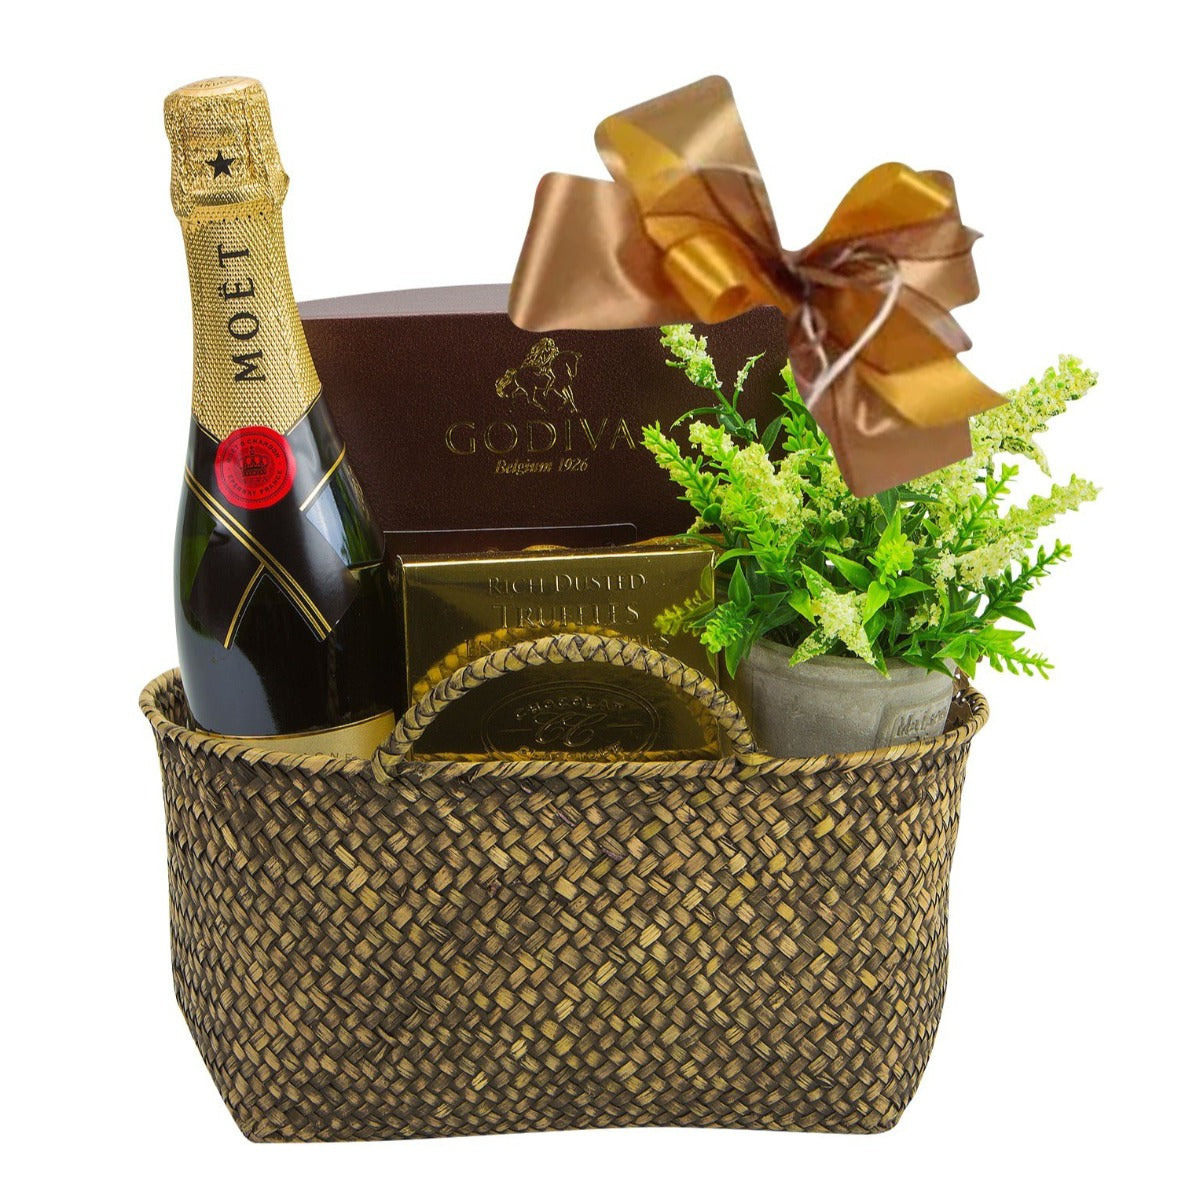 Royal Champagne Gift